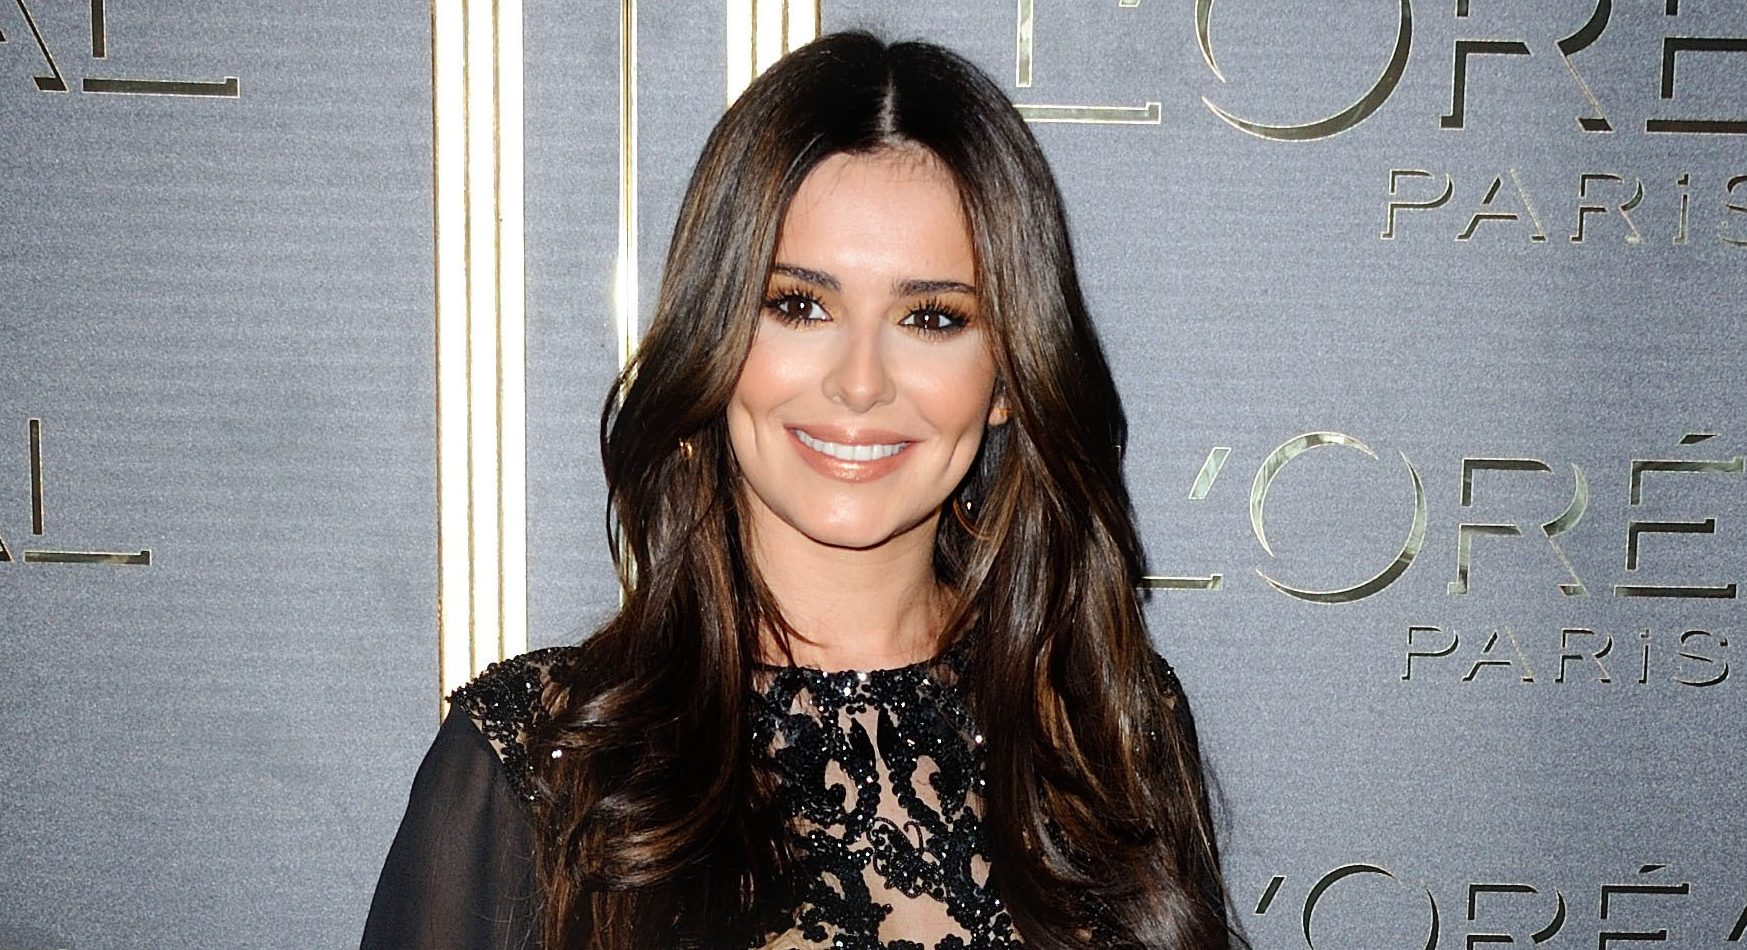 Cheryl denies she's dating again following split from Liam Payne